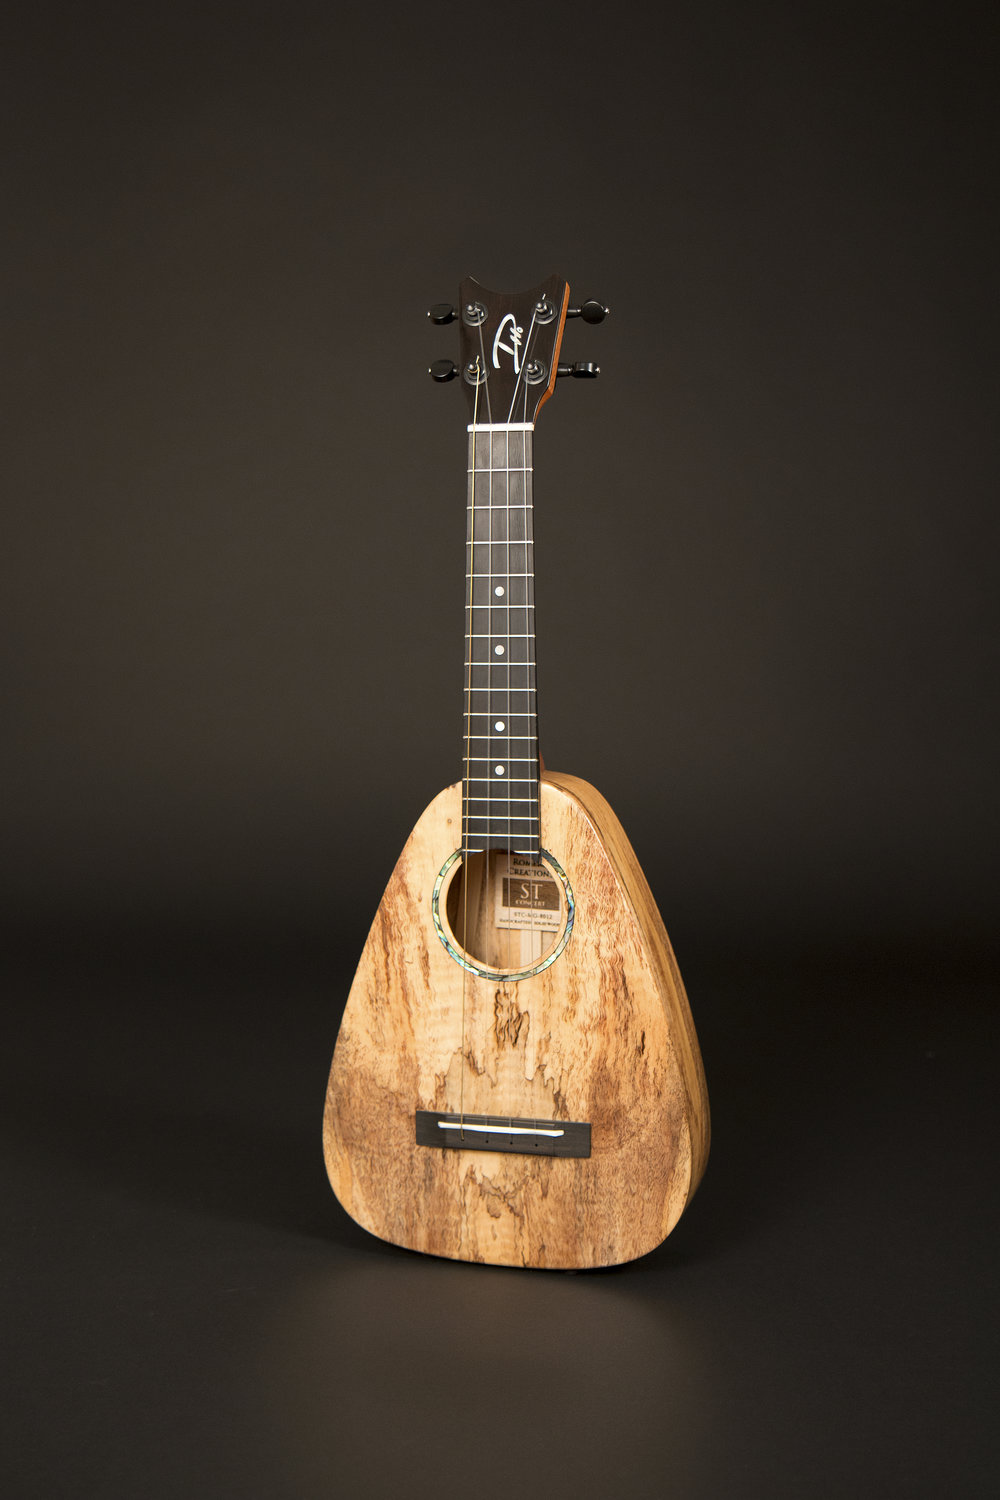 ST Concert Spalted Mango